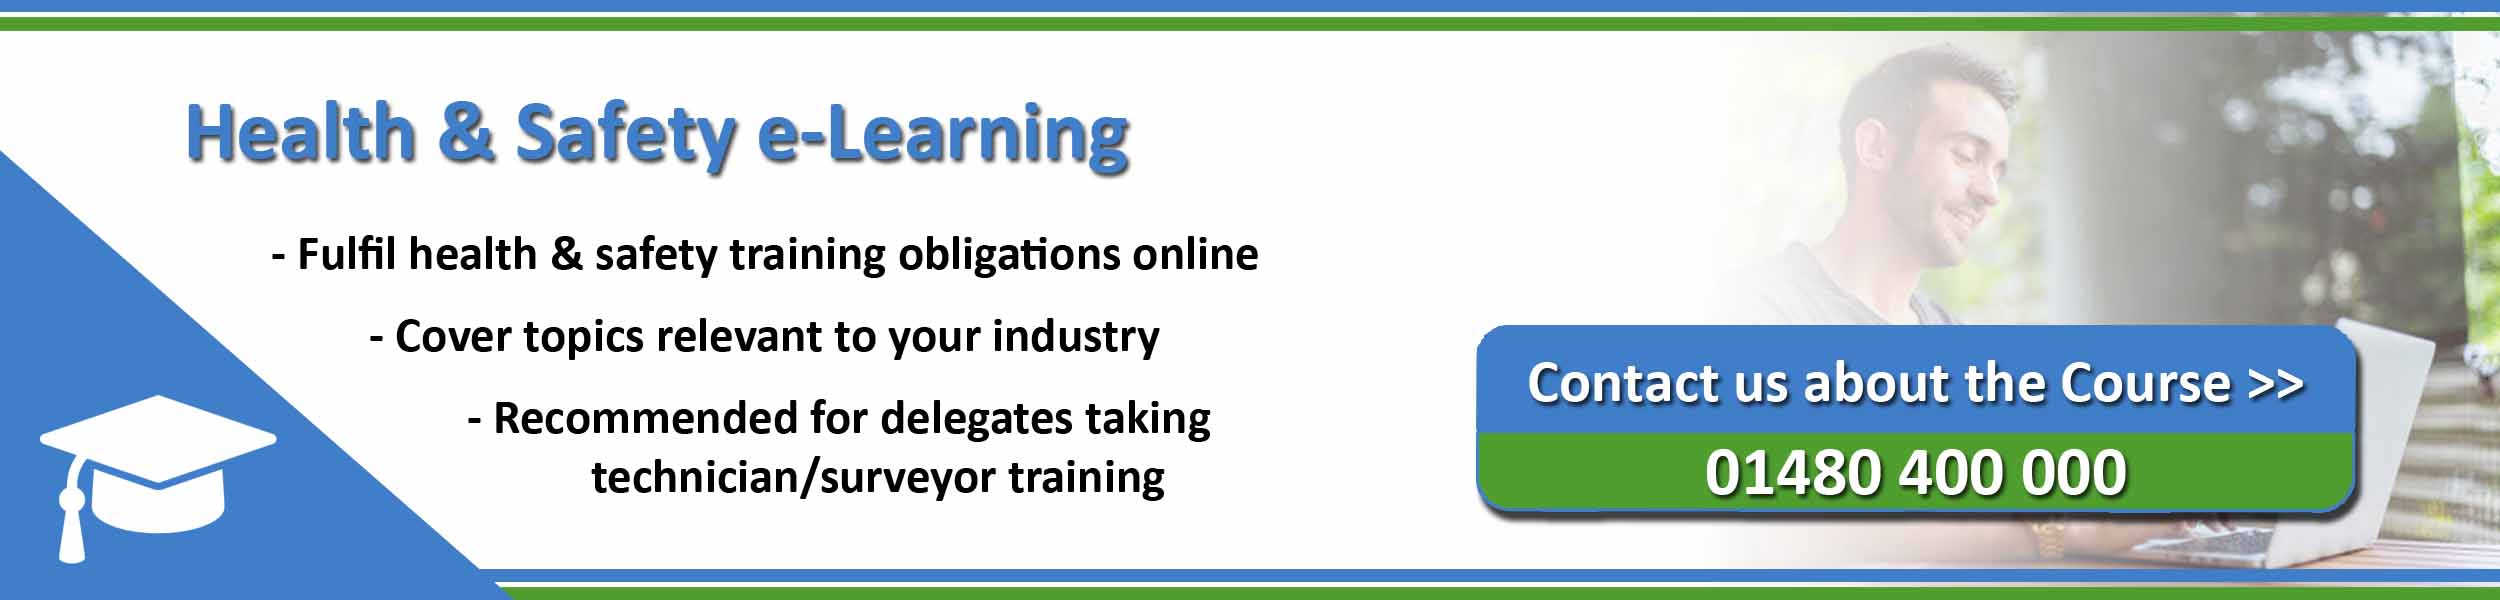 Health and safety e-Learning - Property Care Association